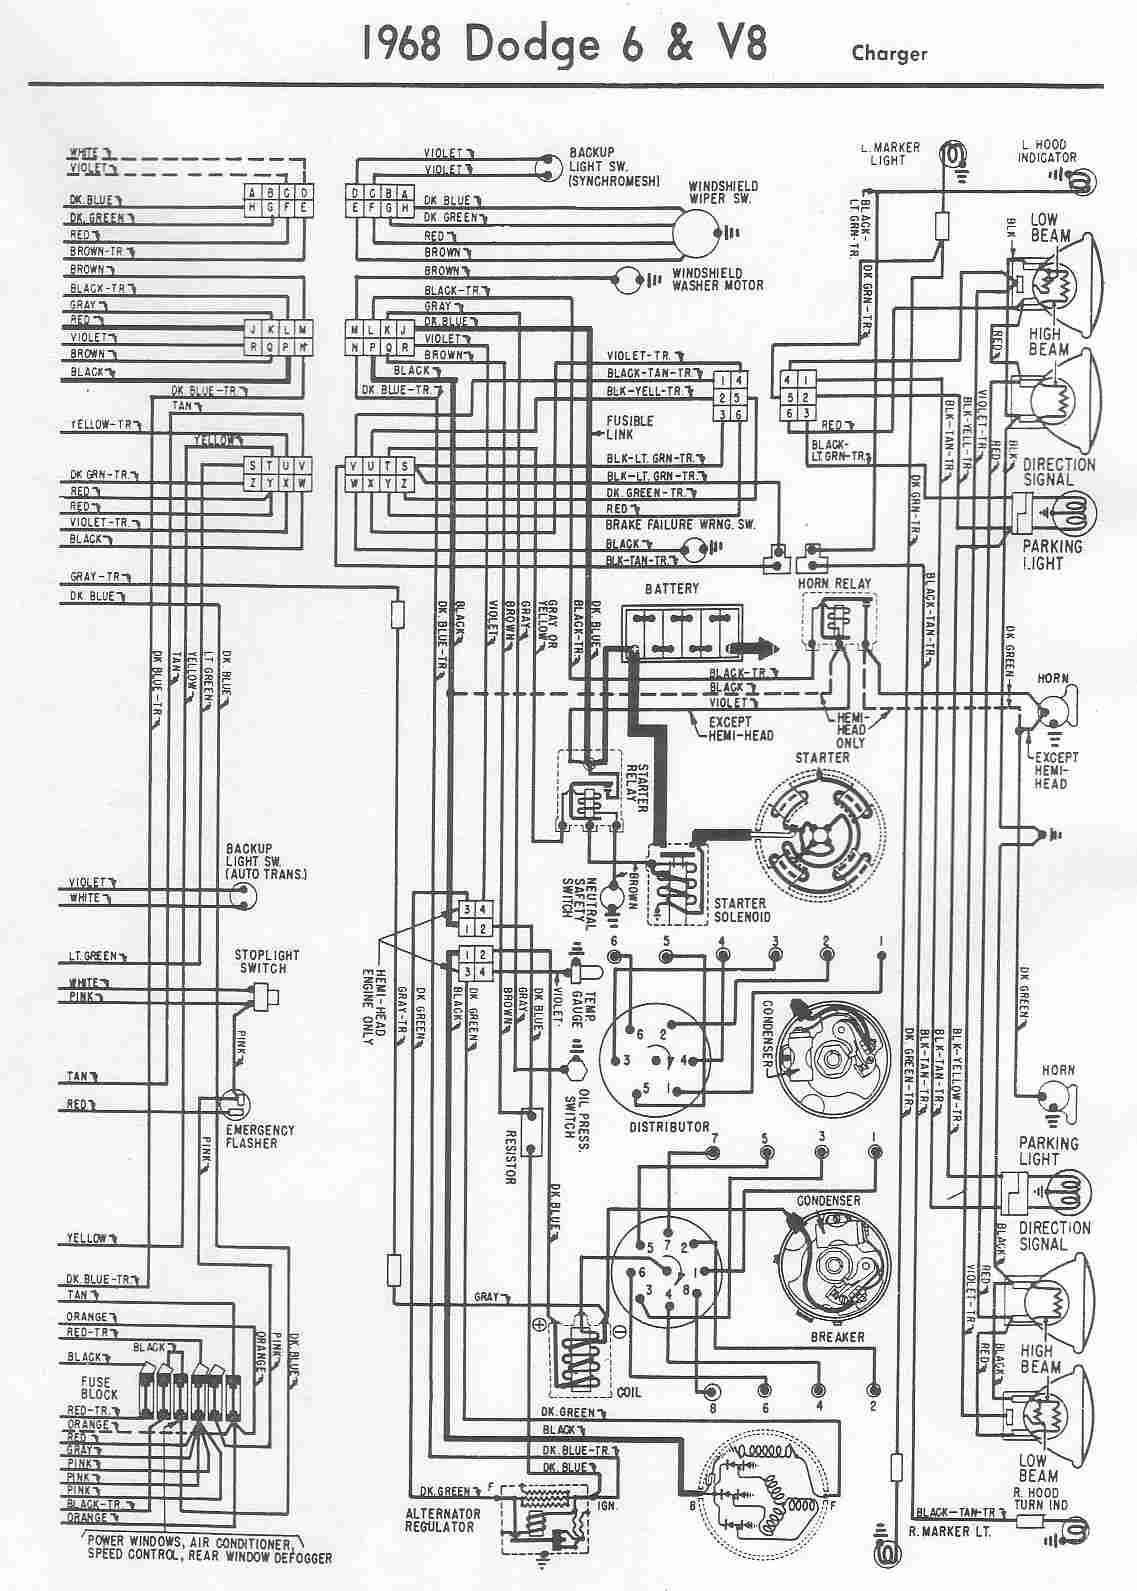 1966 Chrysler Ignition Wiring Diagram - Data Library •